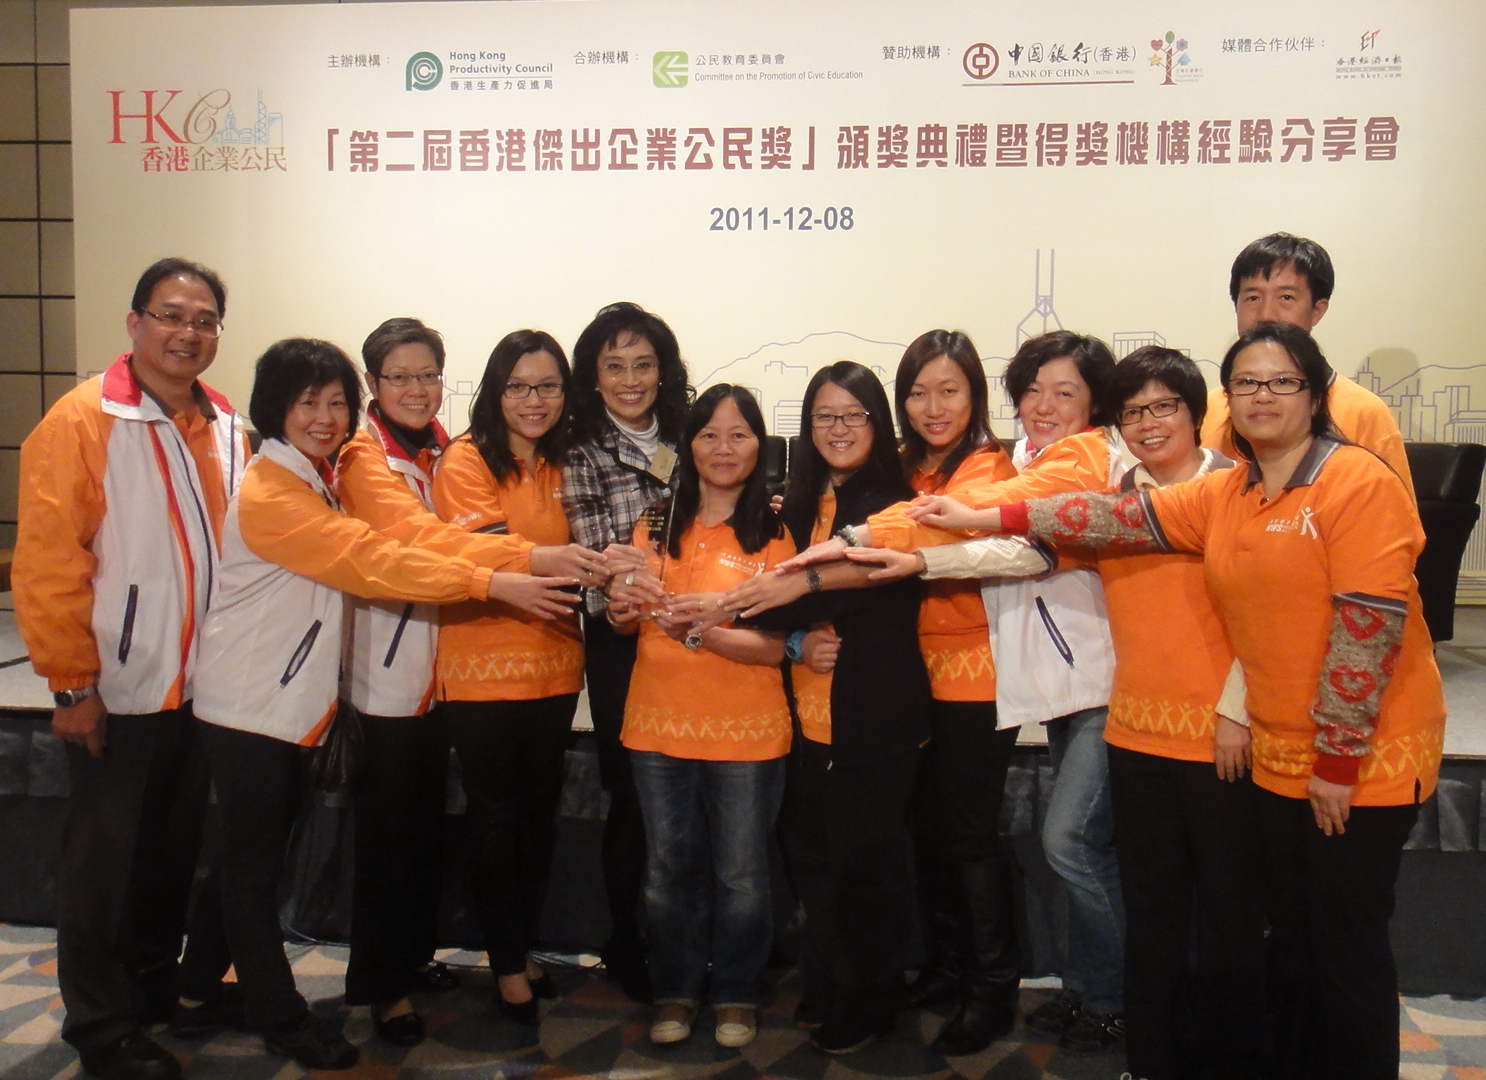 Press Release Photo-NWS Volunteer Alliance garnered Gold Award in the 2nd Hong Kong Outstanding Corporate Citizenship Award